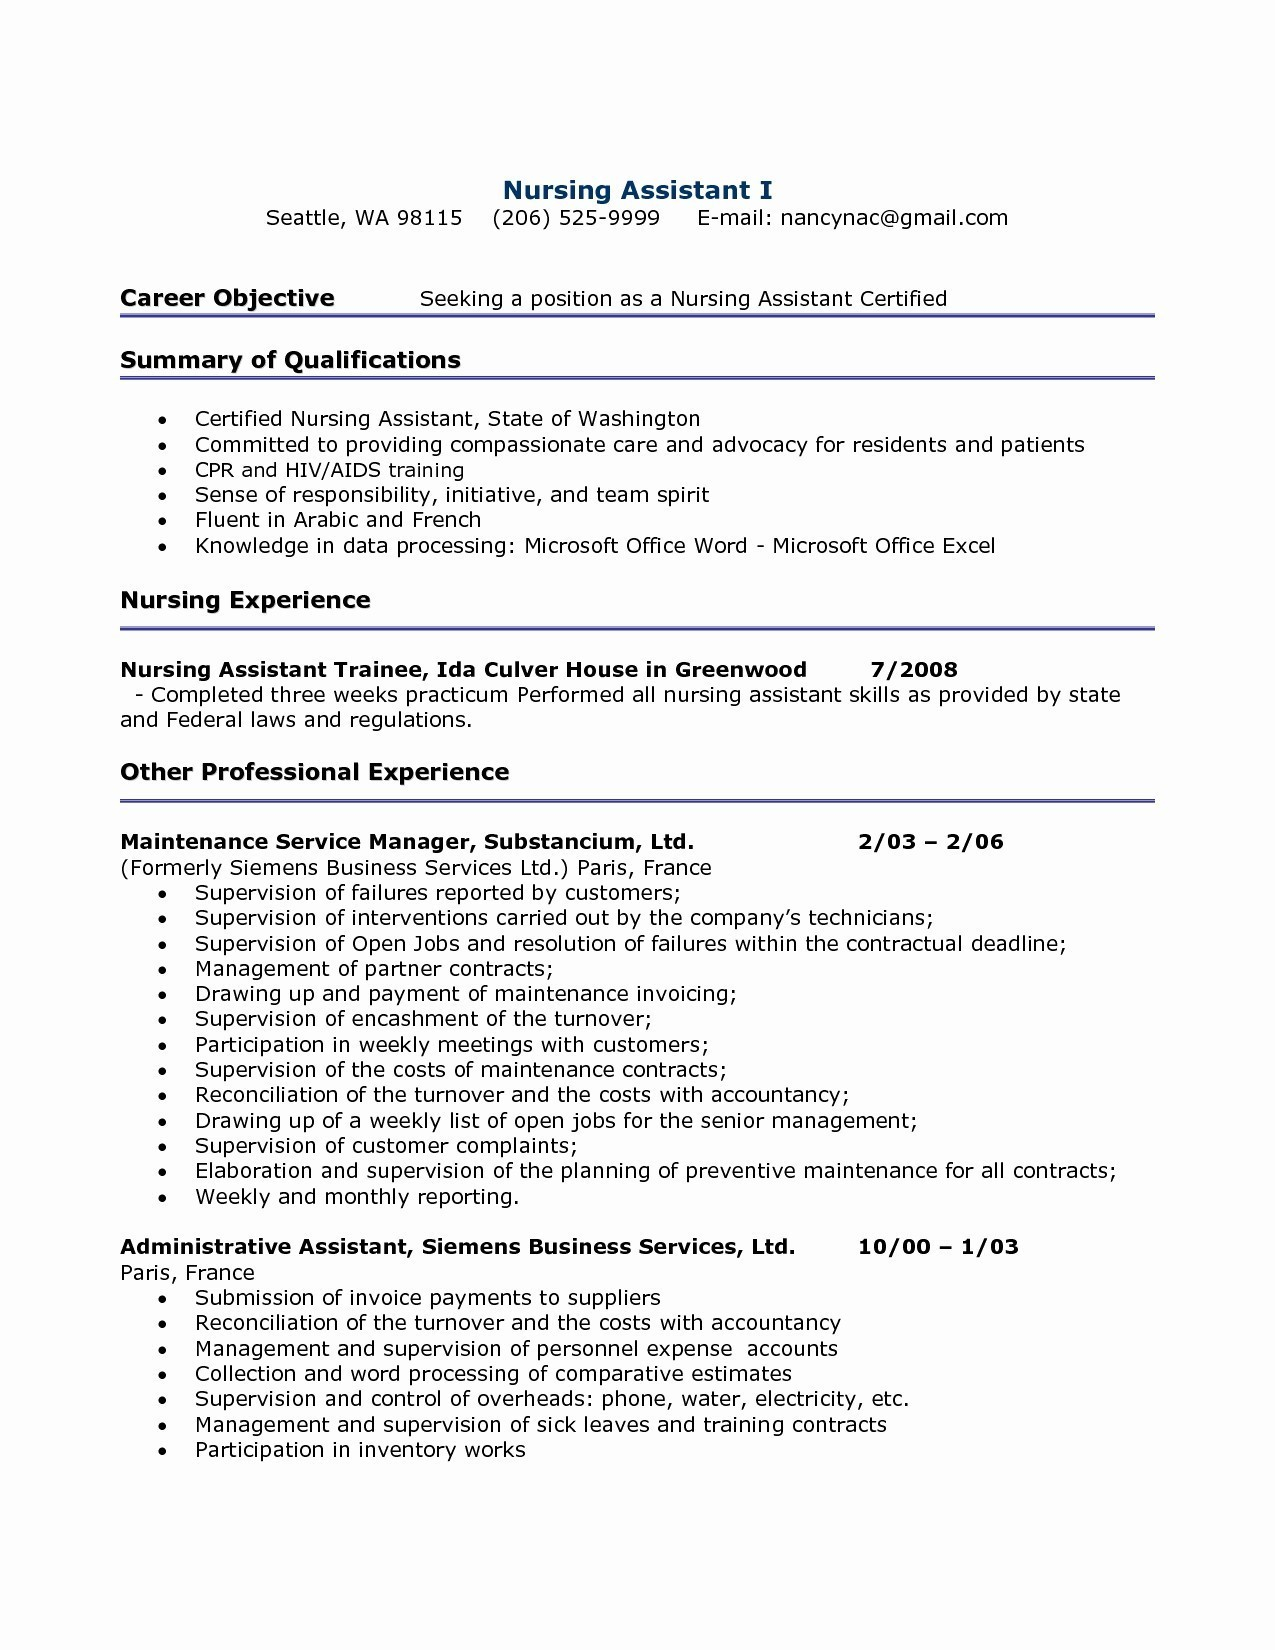 Hr Cover Letter Template Collection | Letter Templates